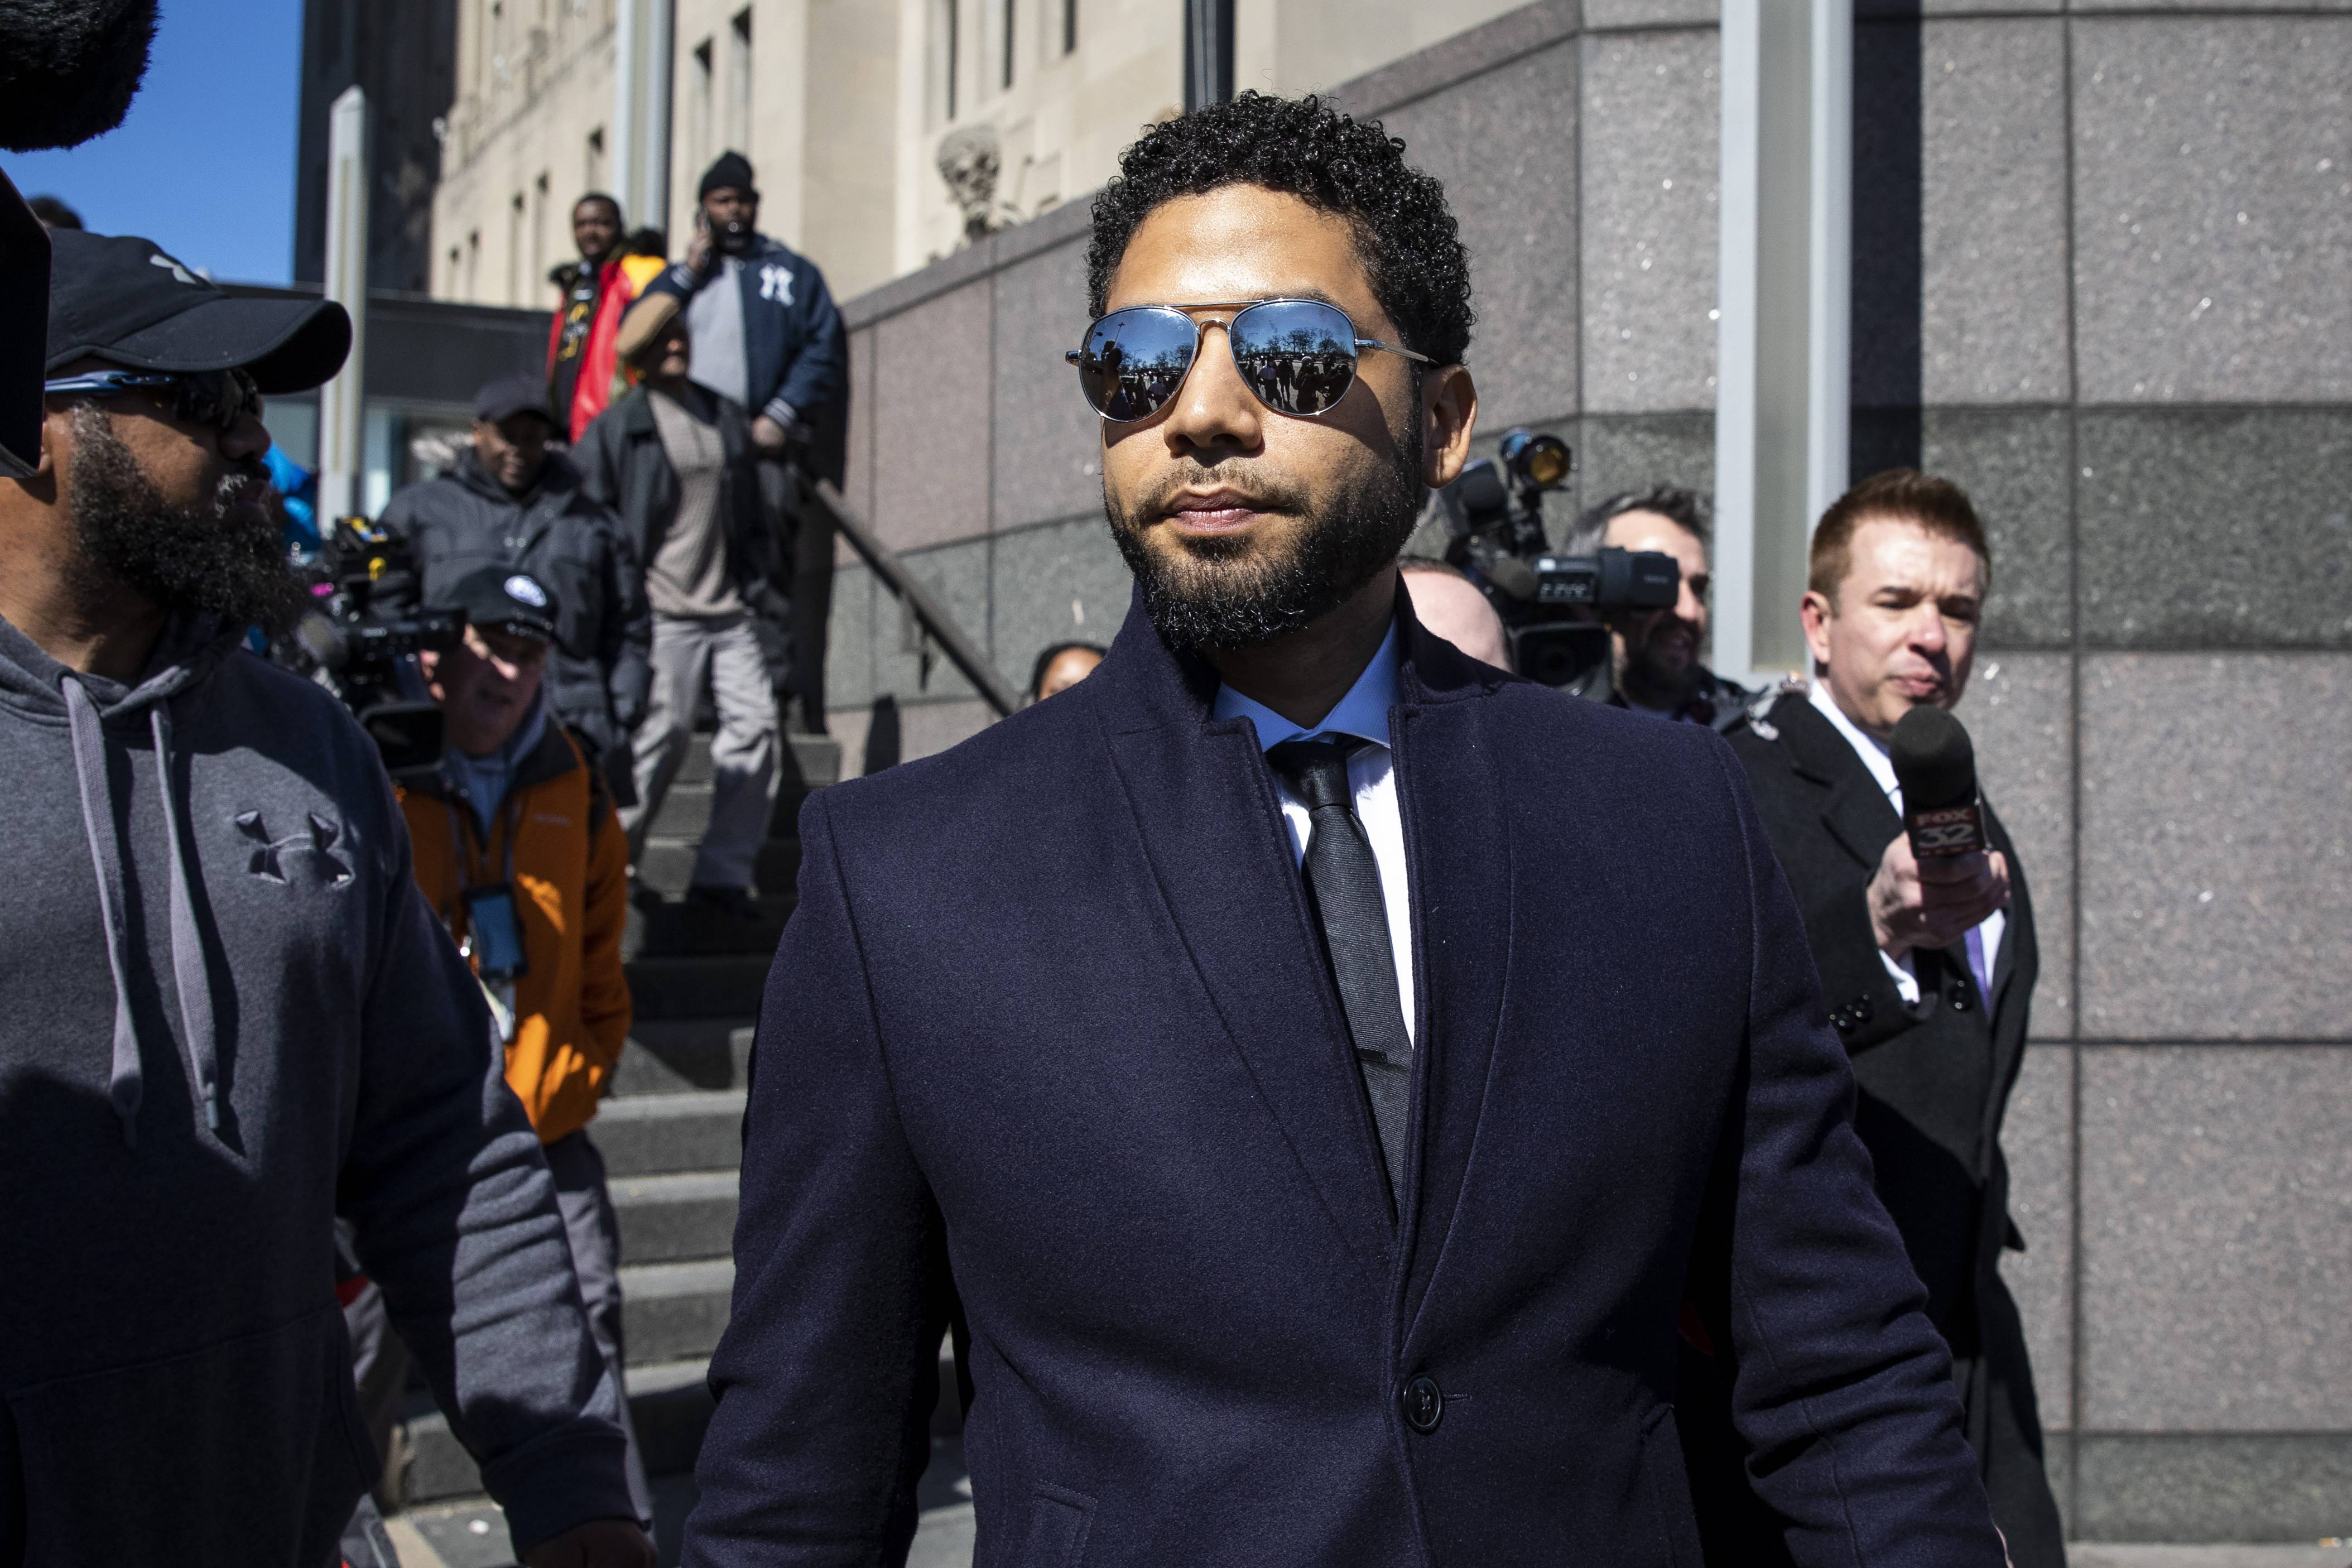 'A whitewash of justice': Emanuel blasts decision to drop charges against Jussie Smollett